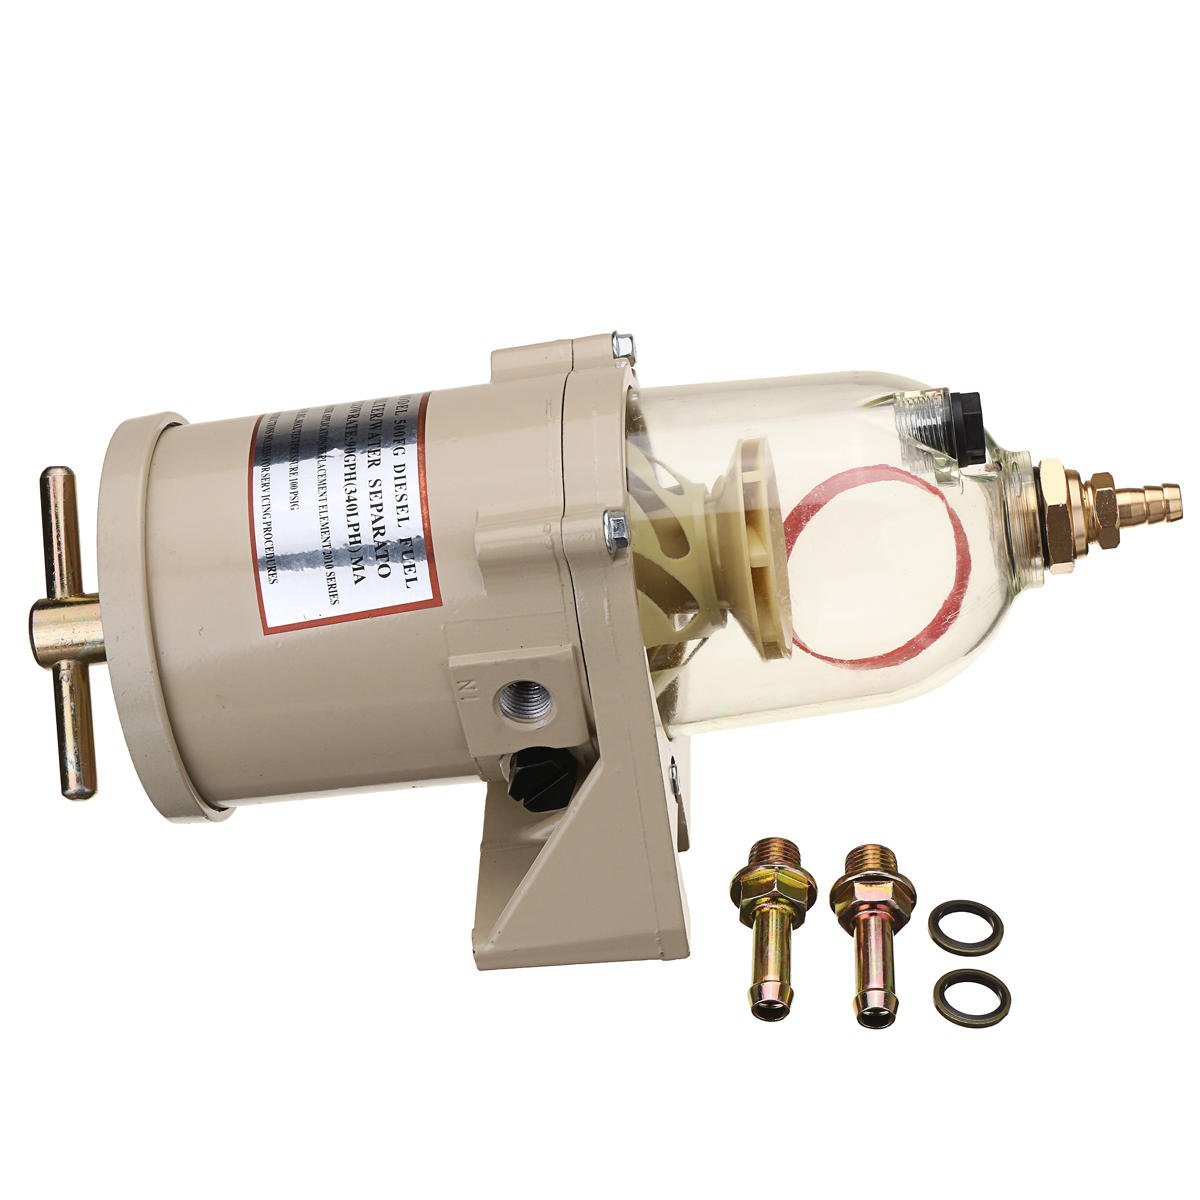 500FG 500FH Fuel Filter Oil/Water Separator Boat Trucks 90GPH - Power Tools Other Power Tools - 1 x Grease Gun, 1 x 10½ inch Hose, 1 x 6½ inch Rigid Connector